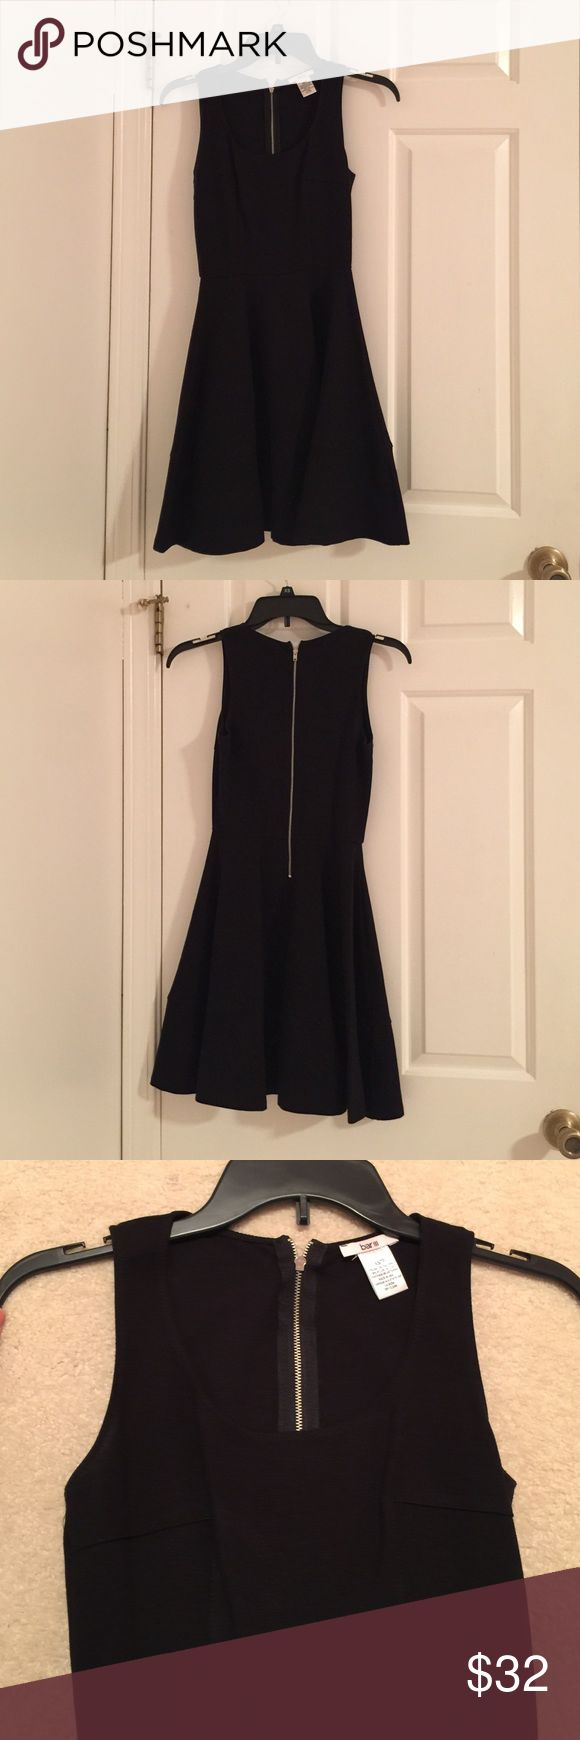 Bar III Women's Skater Dress This black fit and flare skater dress is the perfect dress for any occasion; the scoop neckline allows you to dress it up with a statement neckless and heels, or pair it with an infinity scarf, a cardigan, and some boots! Worn once. Bar III Dresses Mini